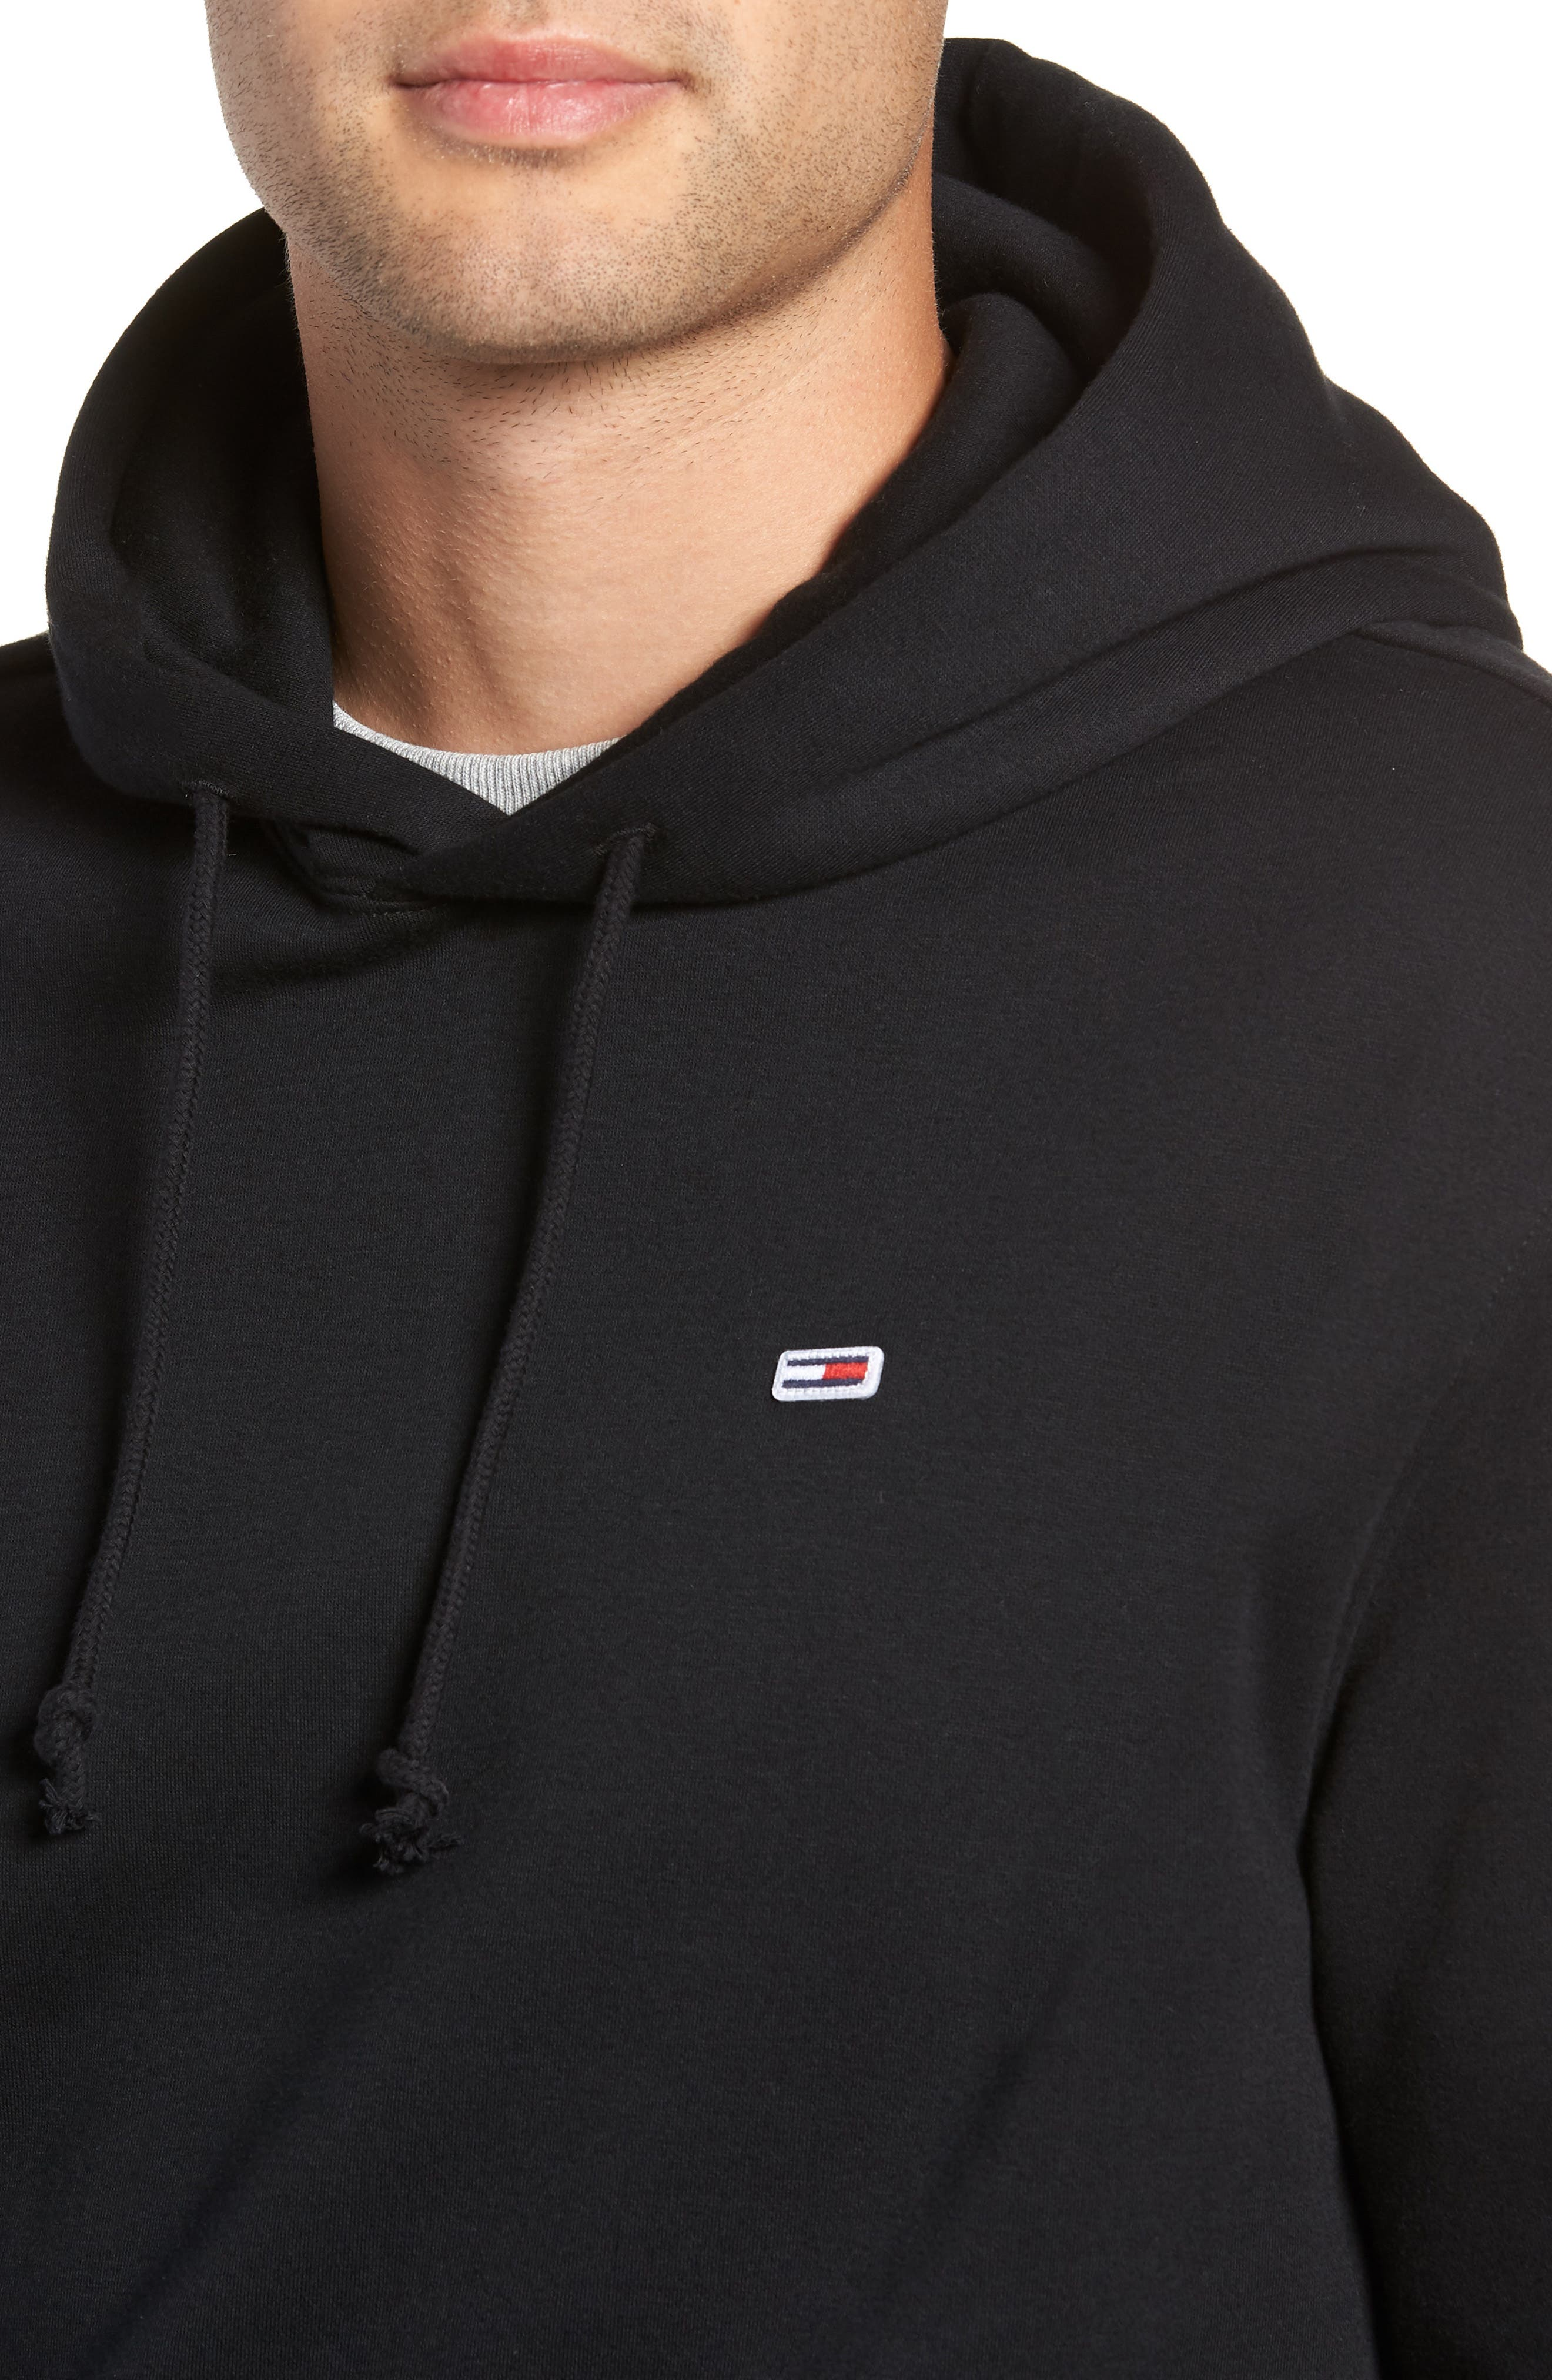 Tommy Classics Hoodie,                             Alternate thumbnail 4, color,                             001